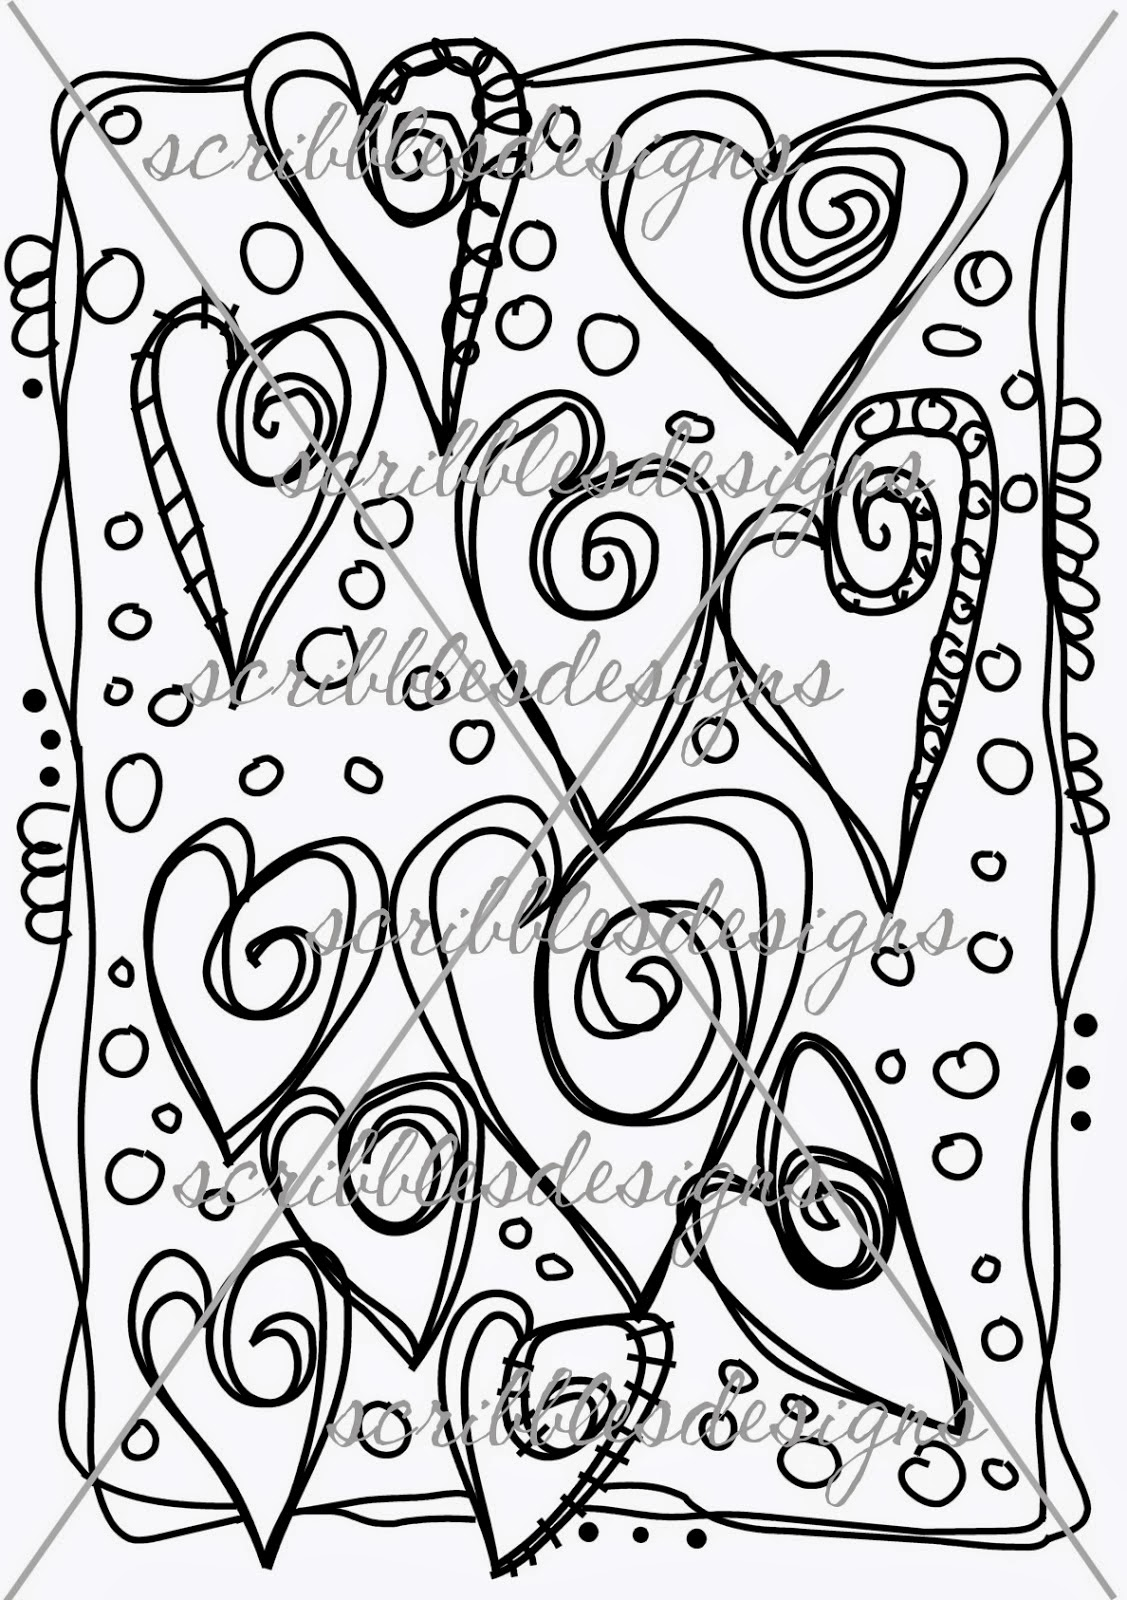 http://buyscribblesdesigns.blogspot.ca/2013/08/a-19-heart-doodle-2-300.html